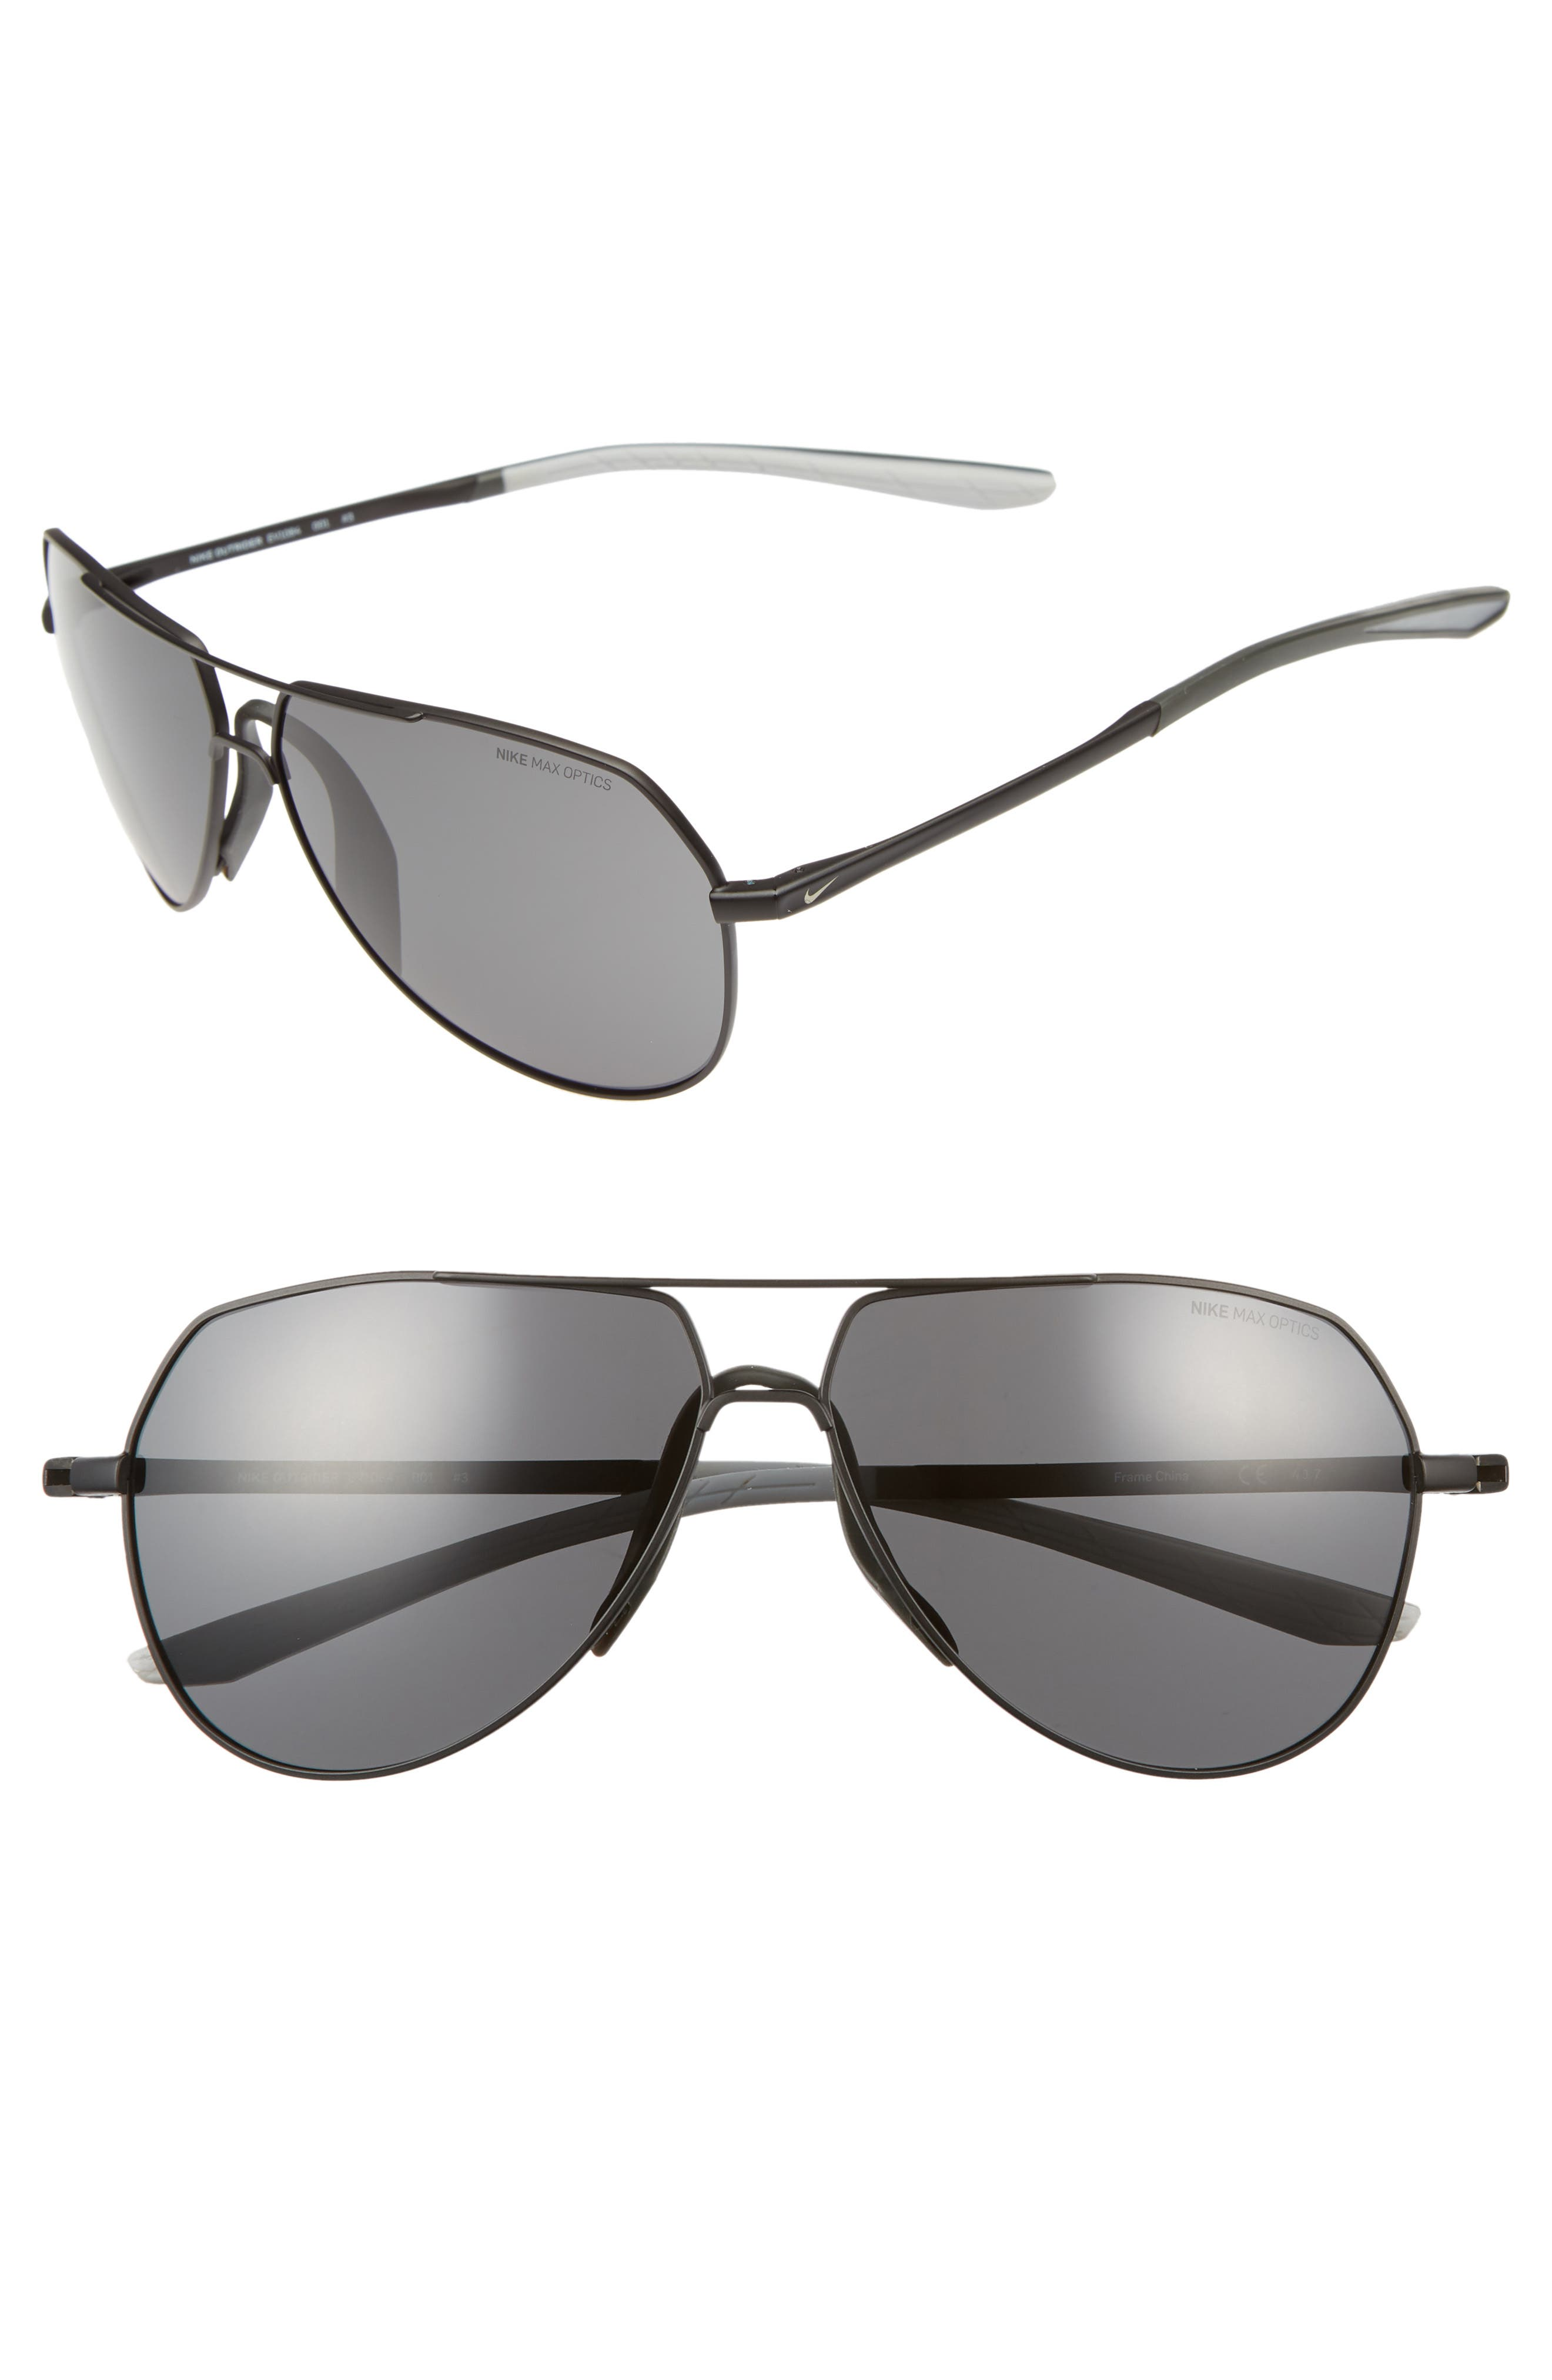 Outrider 62mm Oversize Aviator Sunglasses,                             Main thumbnail 1, color,                             Black/ Grey